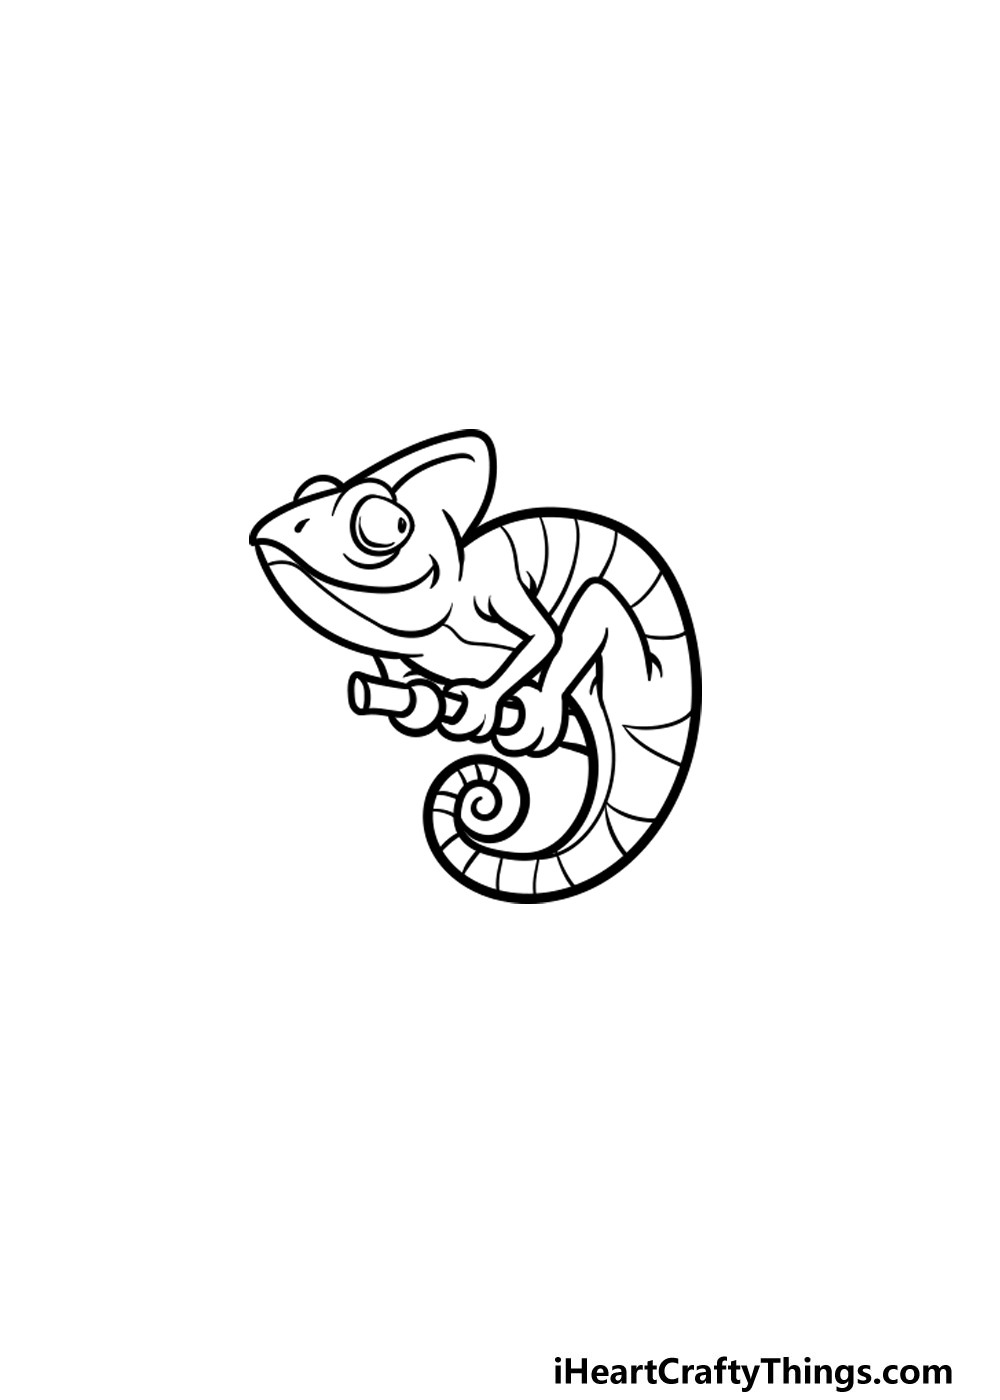 drawing a chameleon step 5